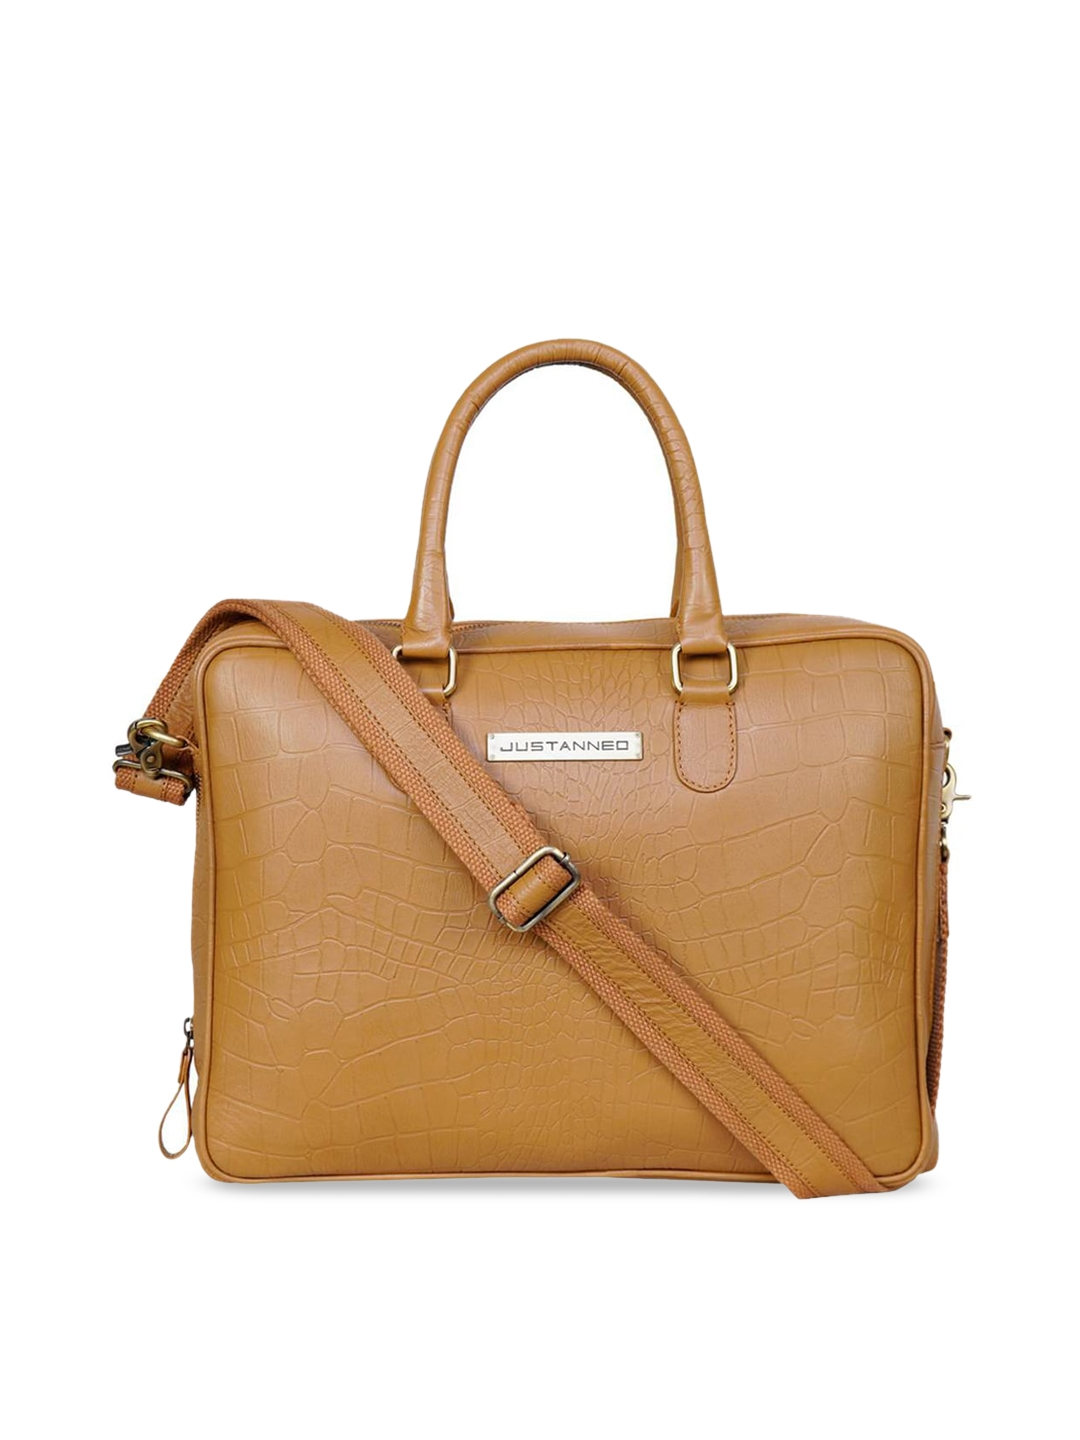 Justanned Men Tan Textured Leather 14 Inch Laptop Bag